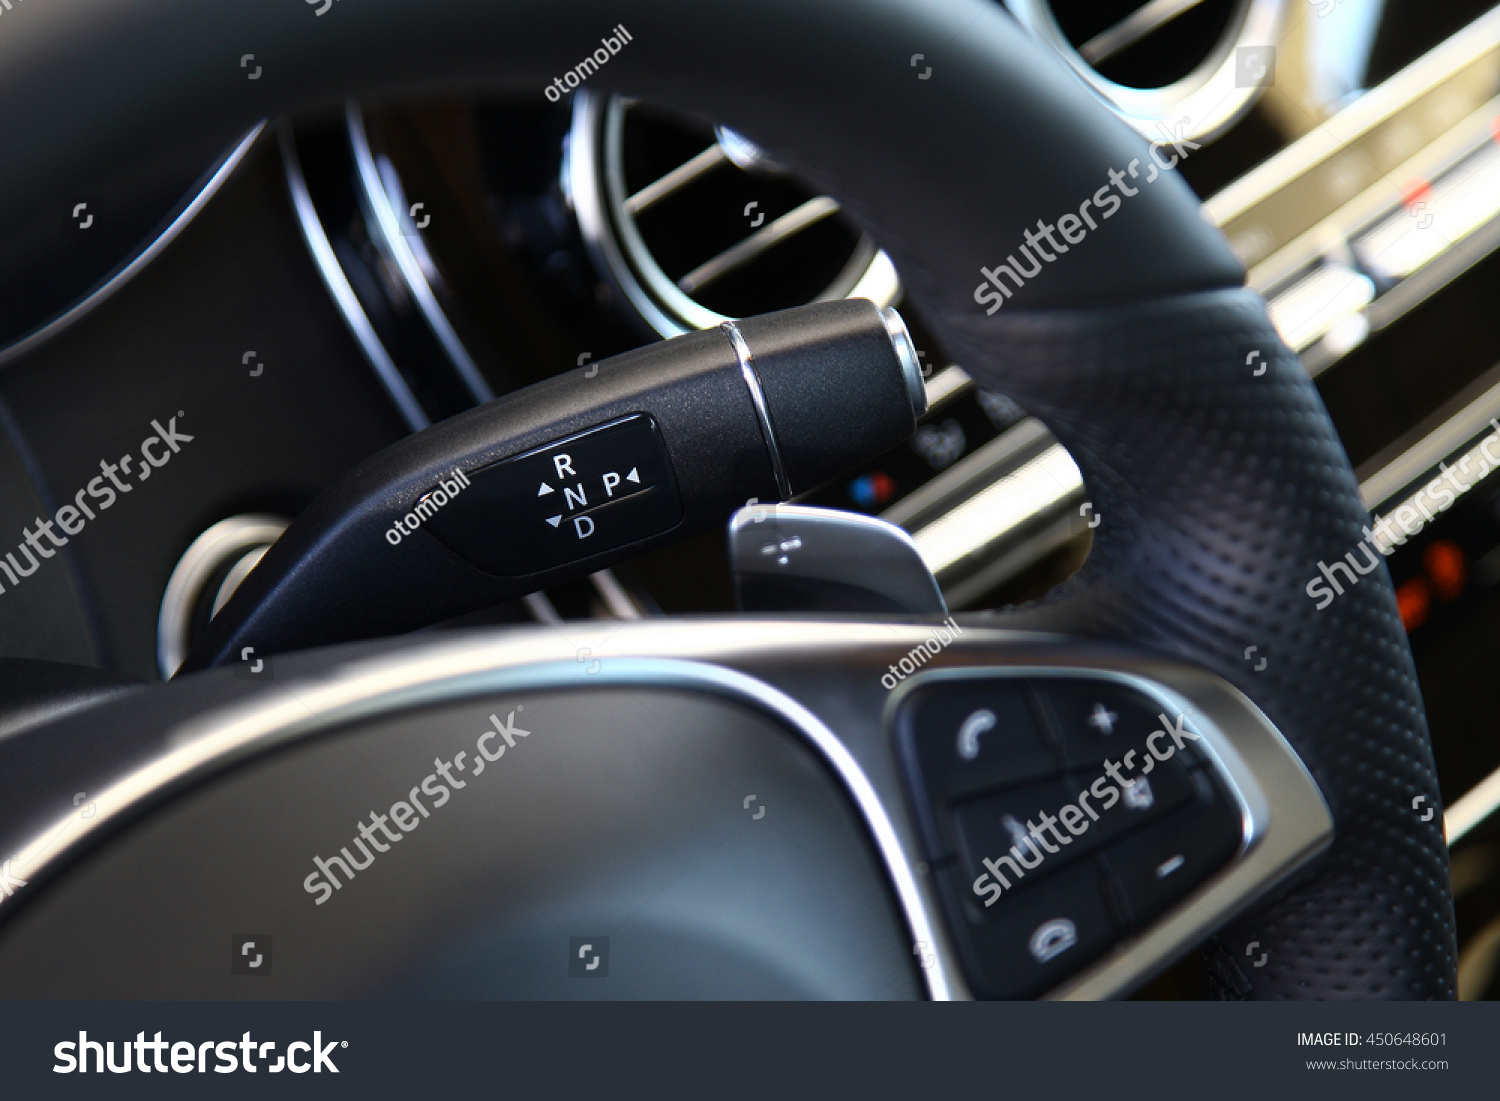 Behind The Steering Wheel : Gear lever behind the steering wheel stock photo